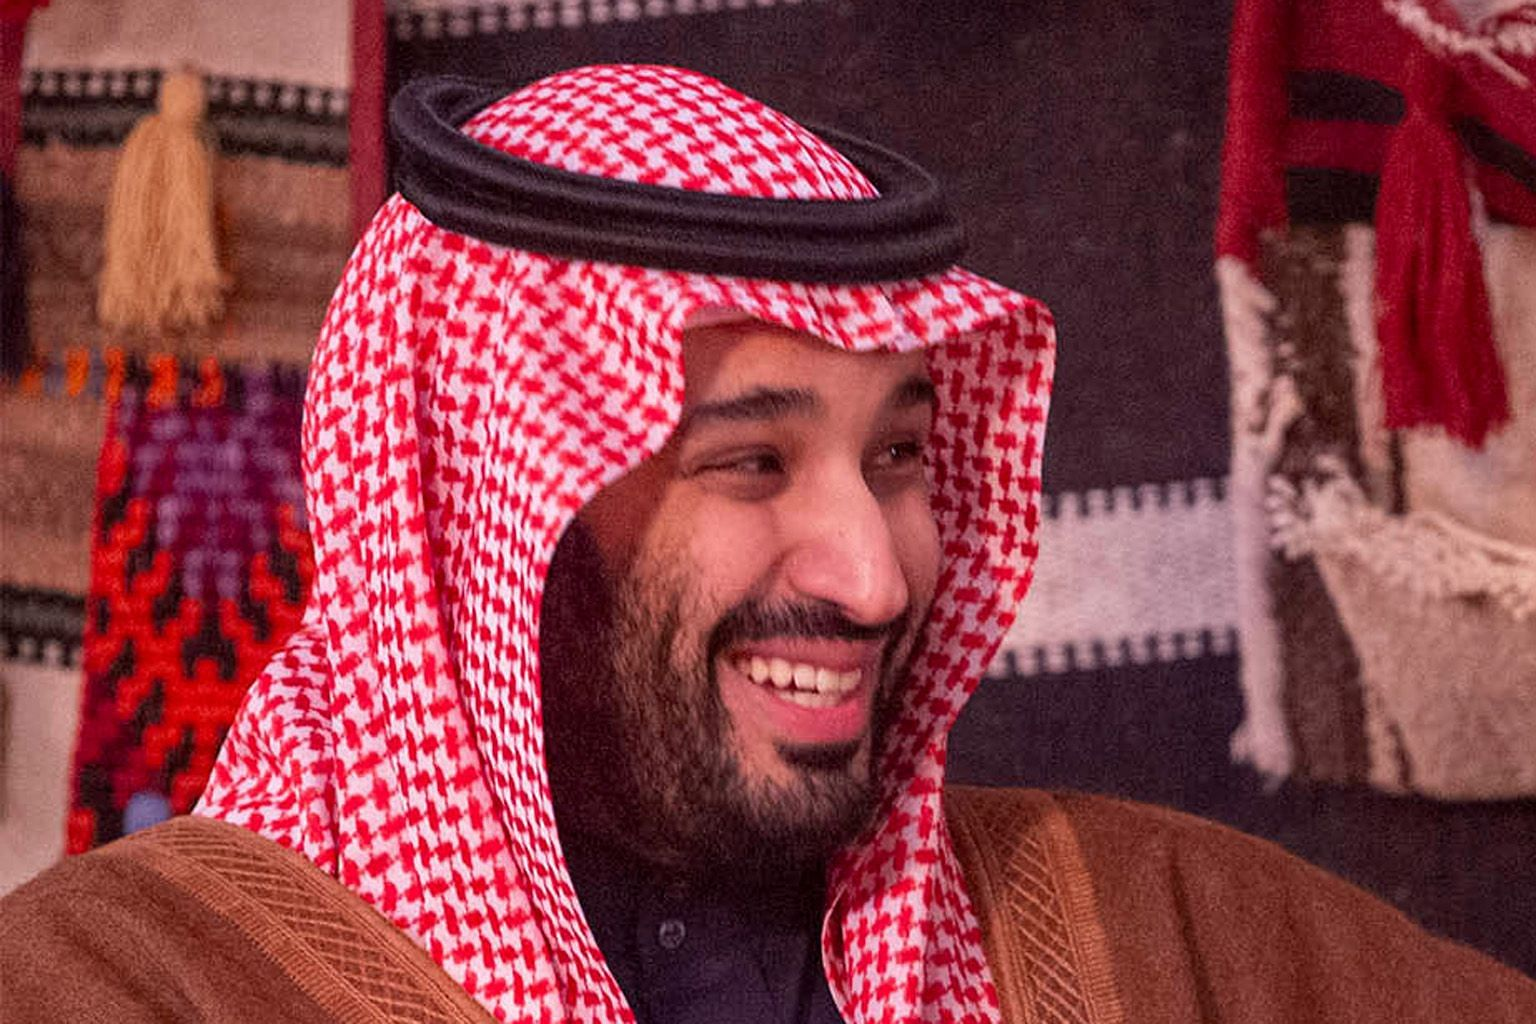 Saudi Arabia's Crown Prince Mohammed bin Salman has been linked to a report suggesting the kingdom is involved in the hacking of a phone used by Amazon boss Jeff Bezos, seen here with his girlfriend Lauren Sanchez.